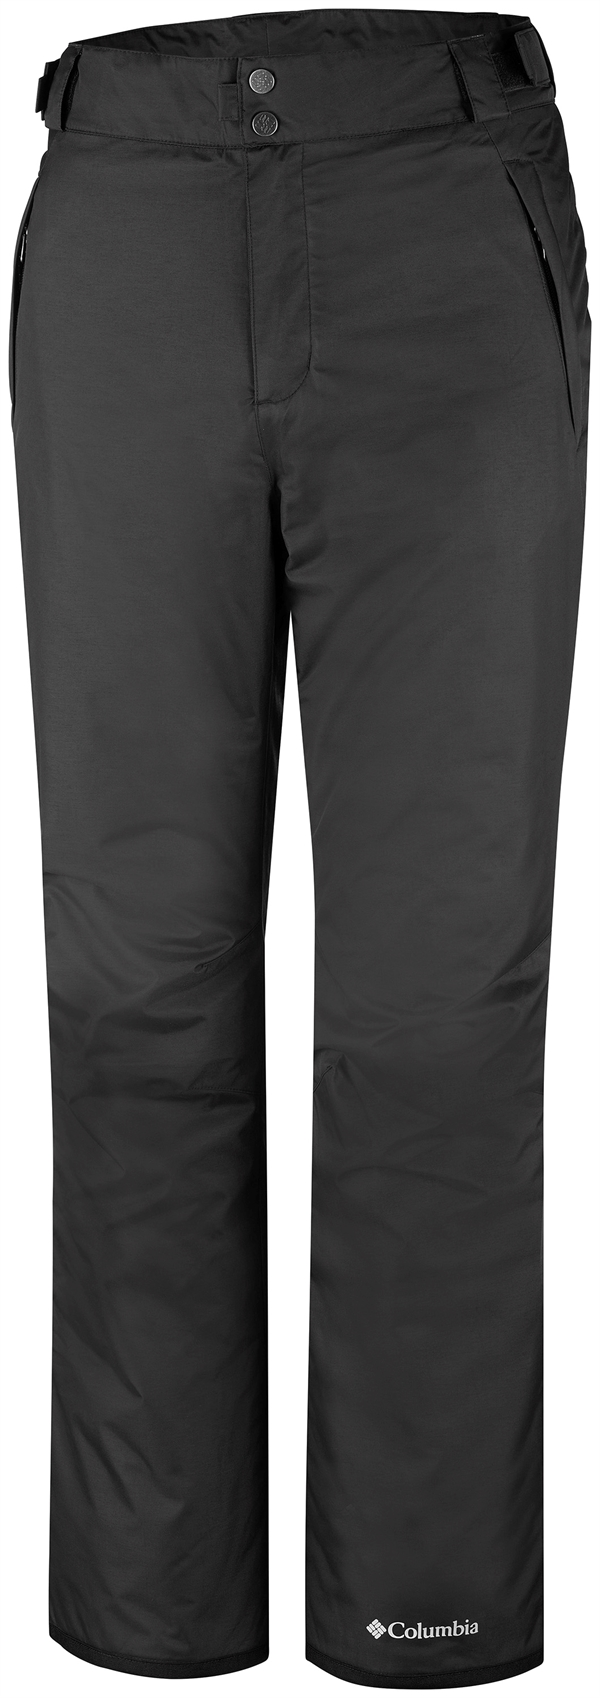 Columbia Ride On Pants Men Black